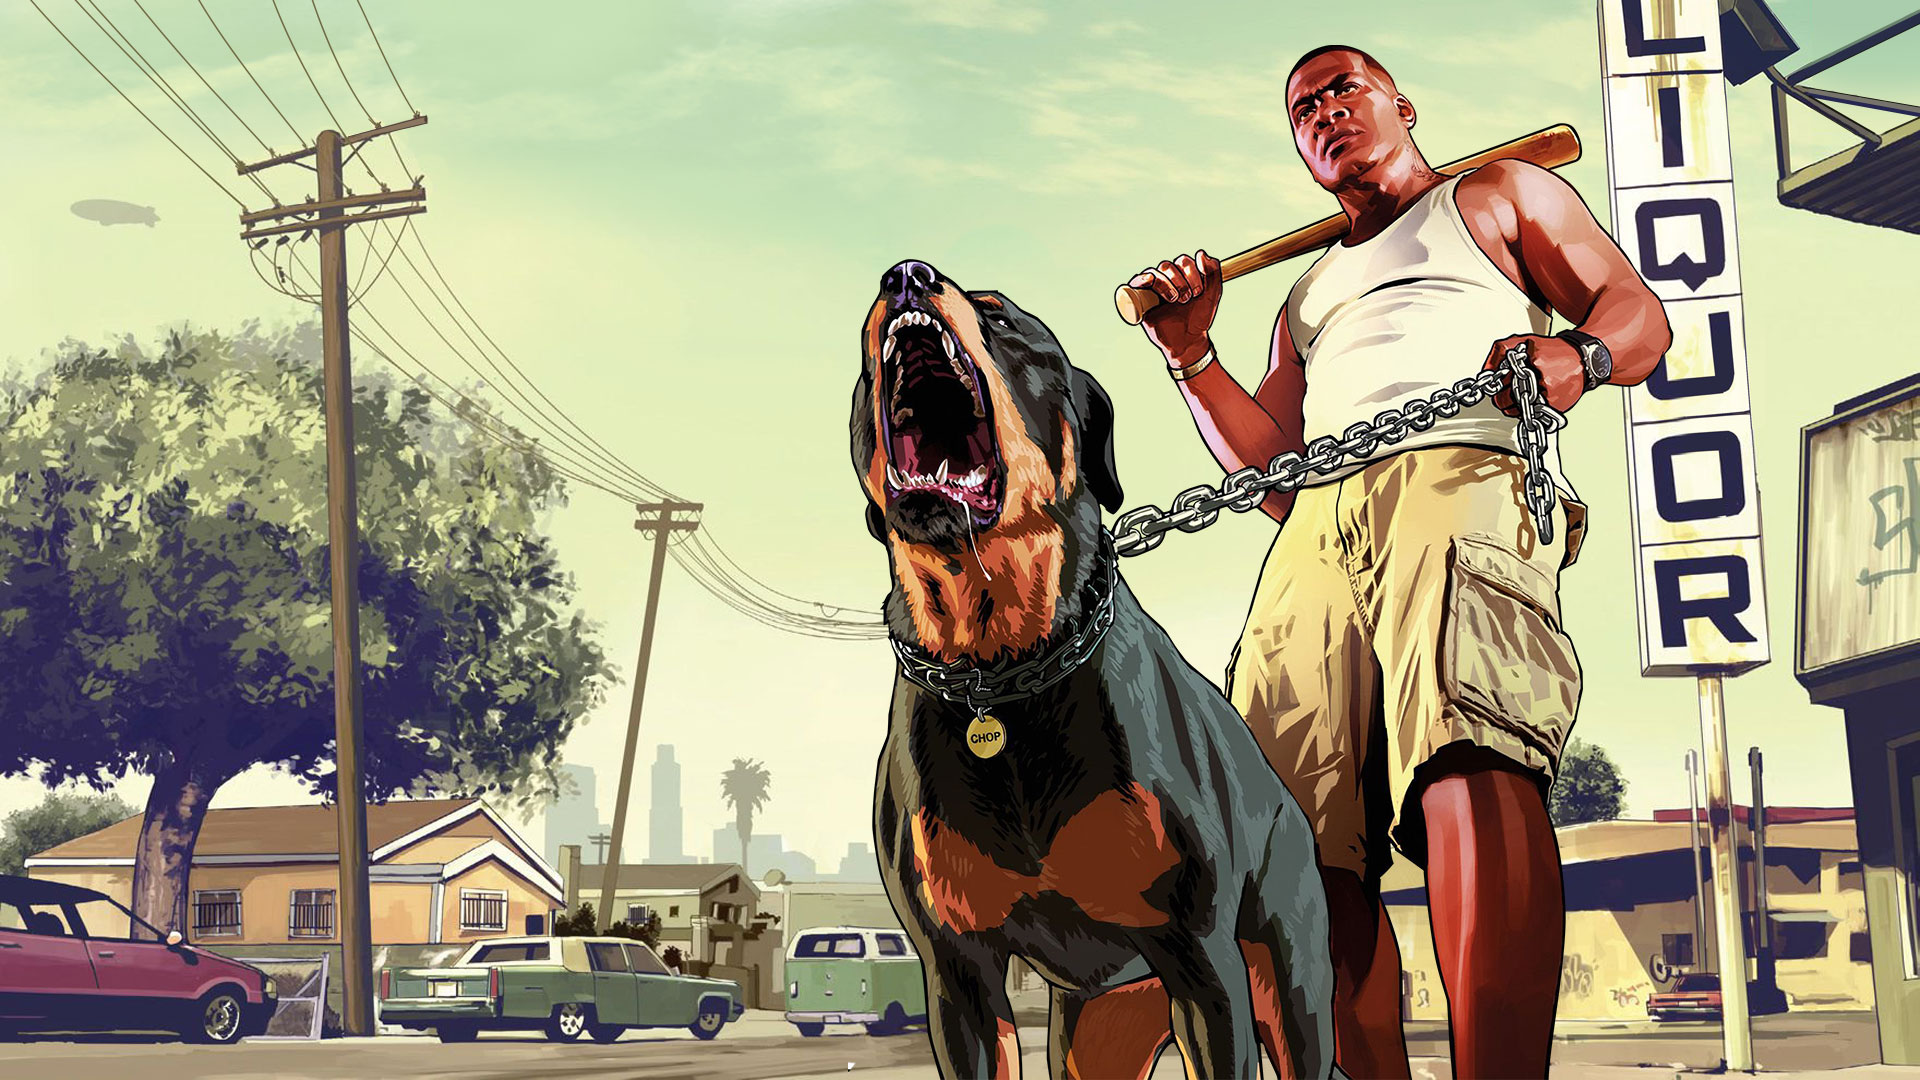 Wallpapers Gta 5